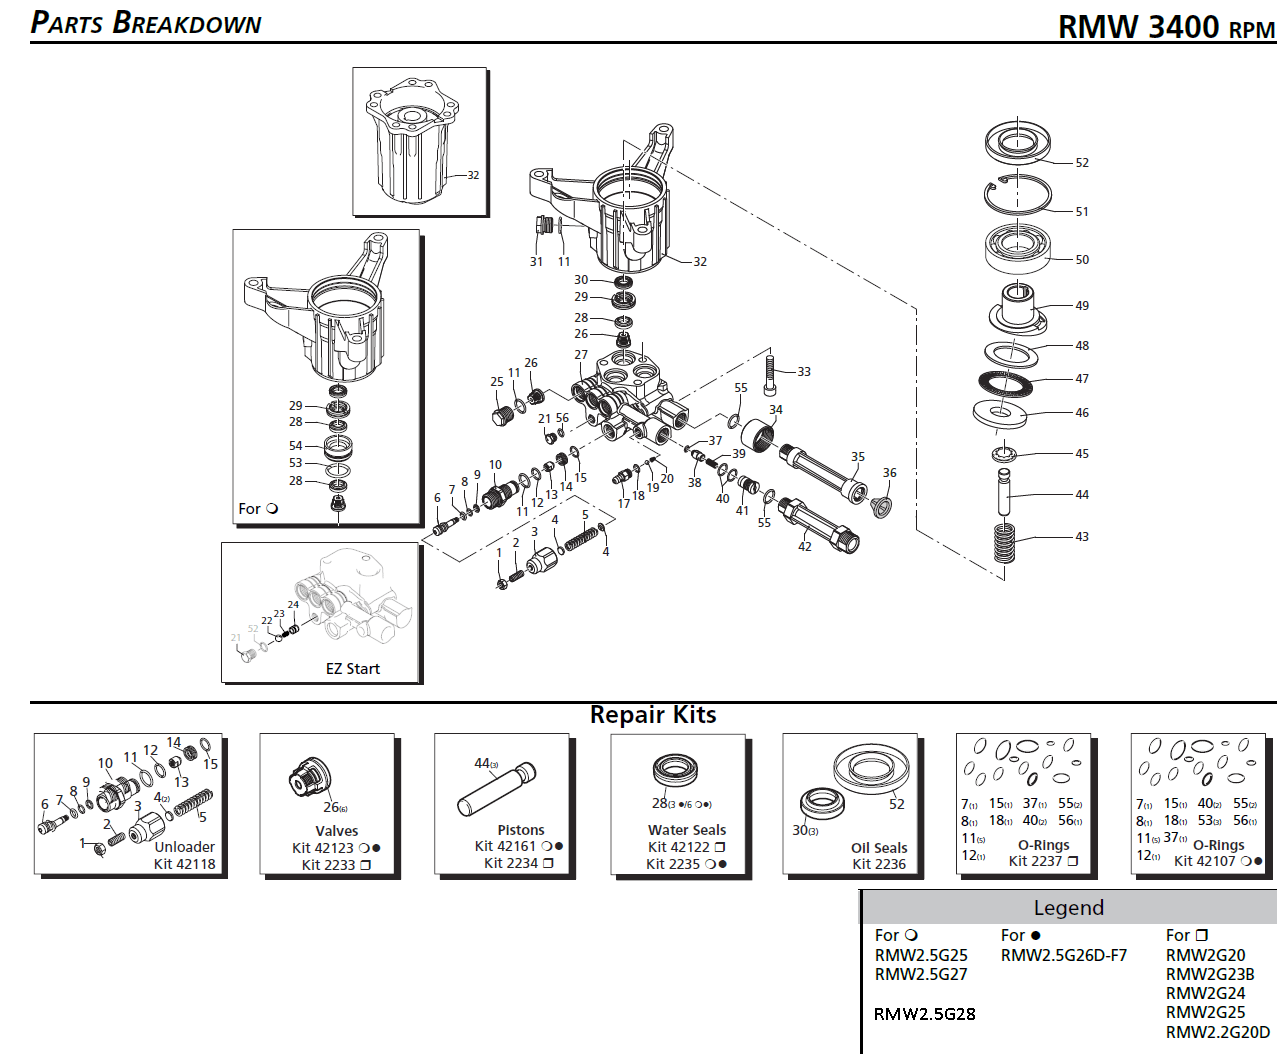 troy bilt pressure washer parts diagram bell hd satellite wiring model 020419 replacement